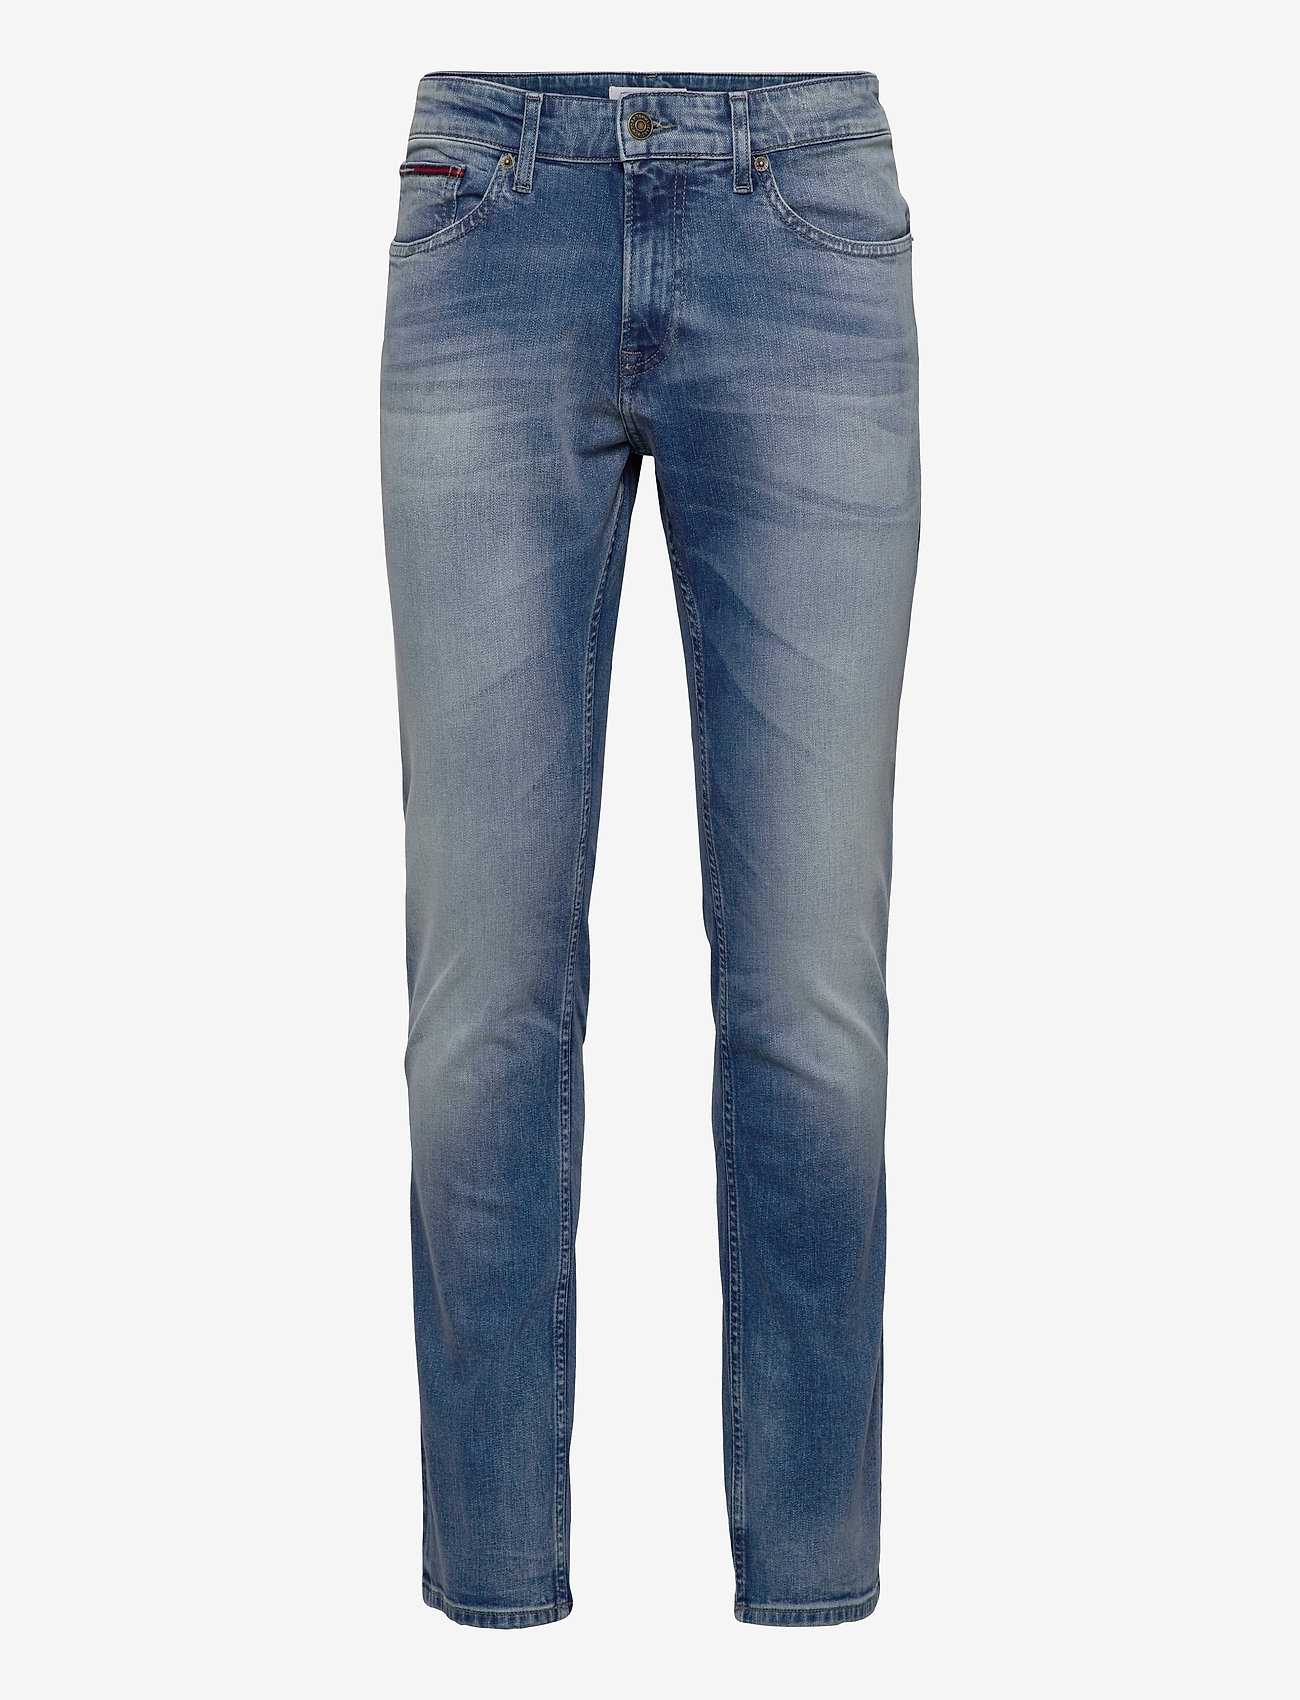 Tommy Jeans - SCANTON SLIM WLBS - slim jeans - wilson light blue stretch - 0